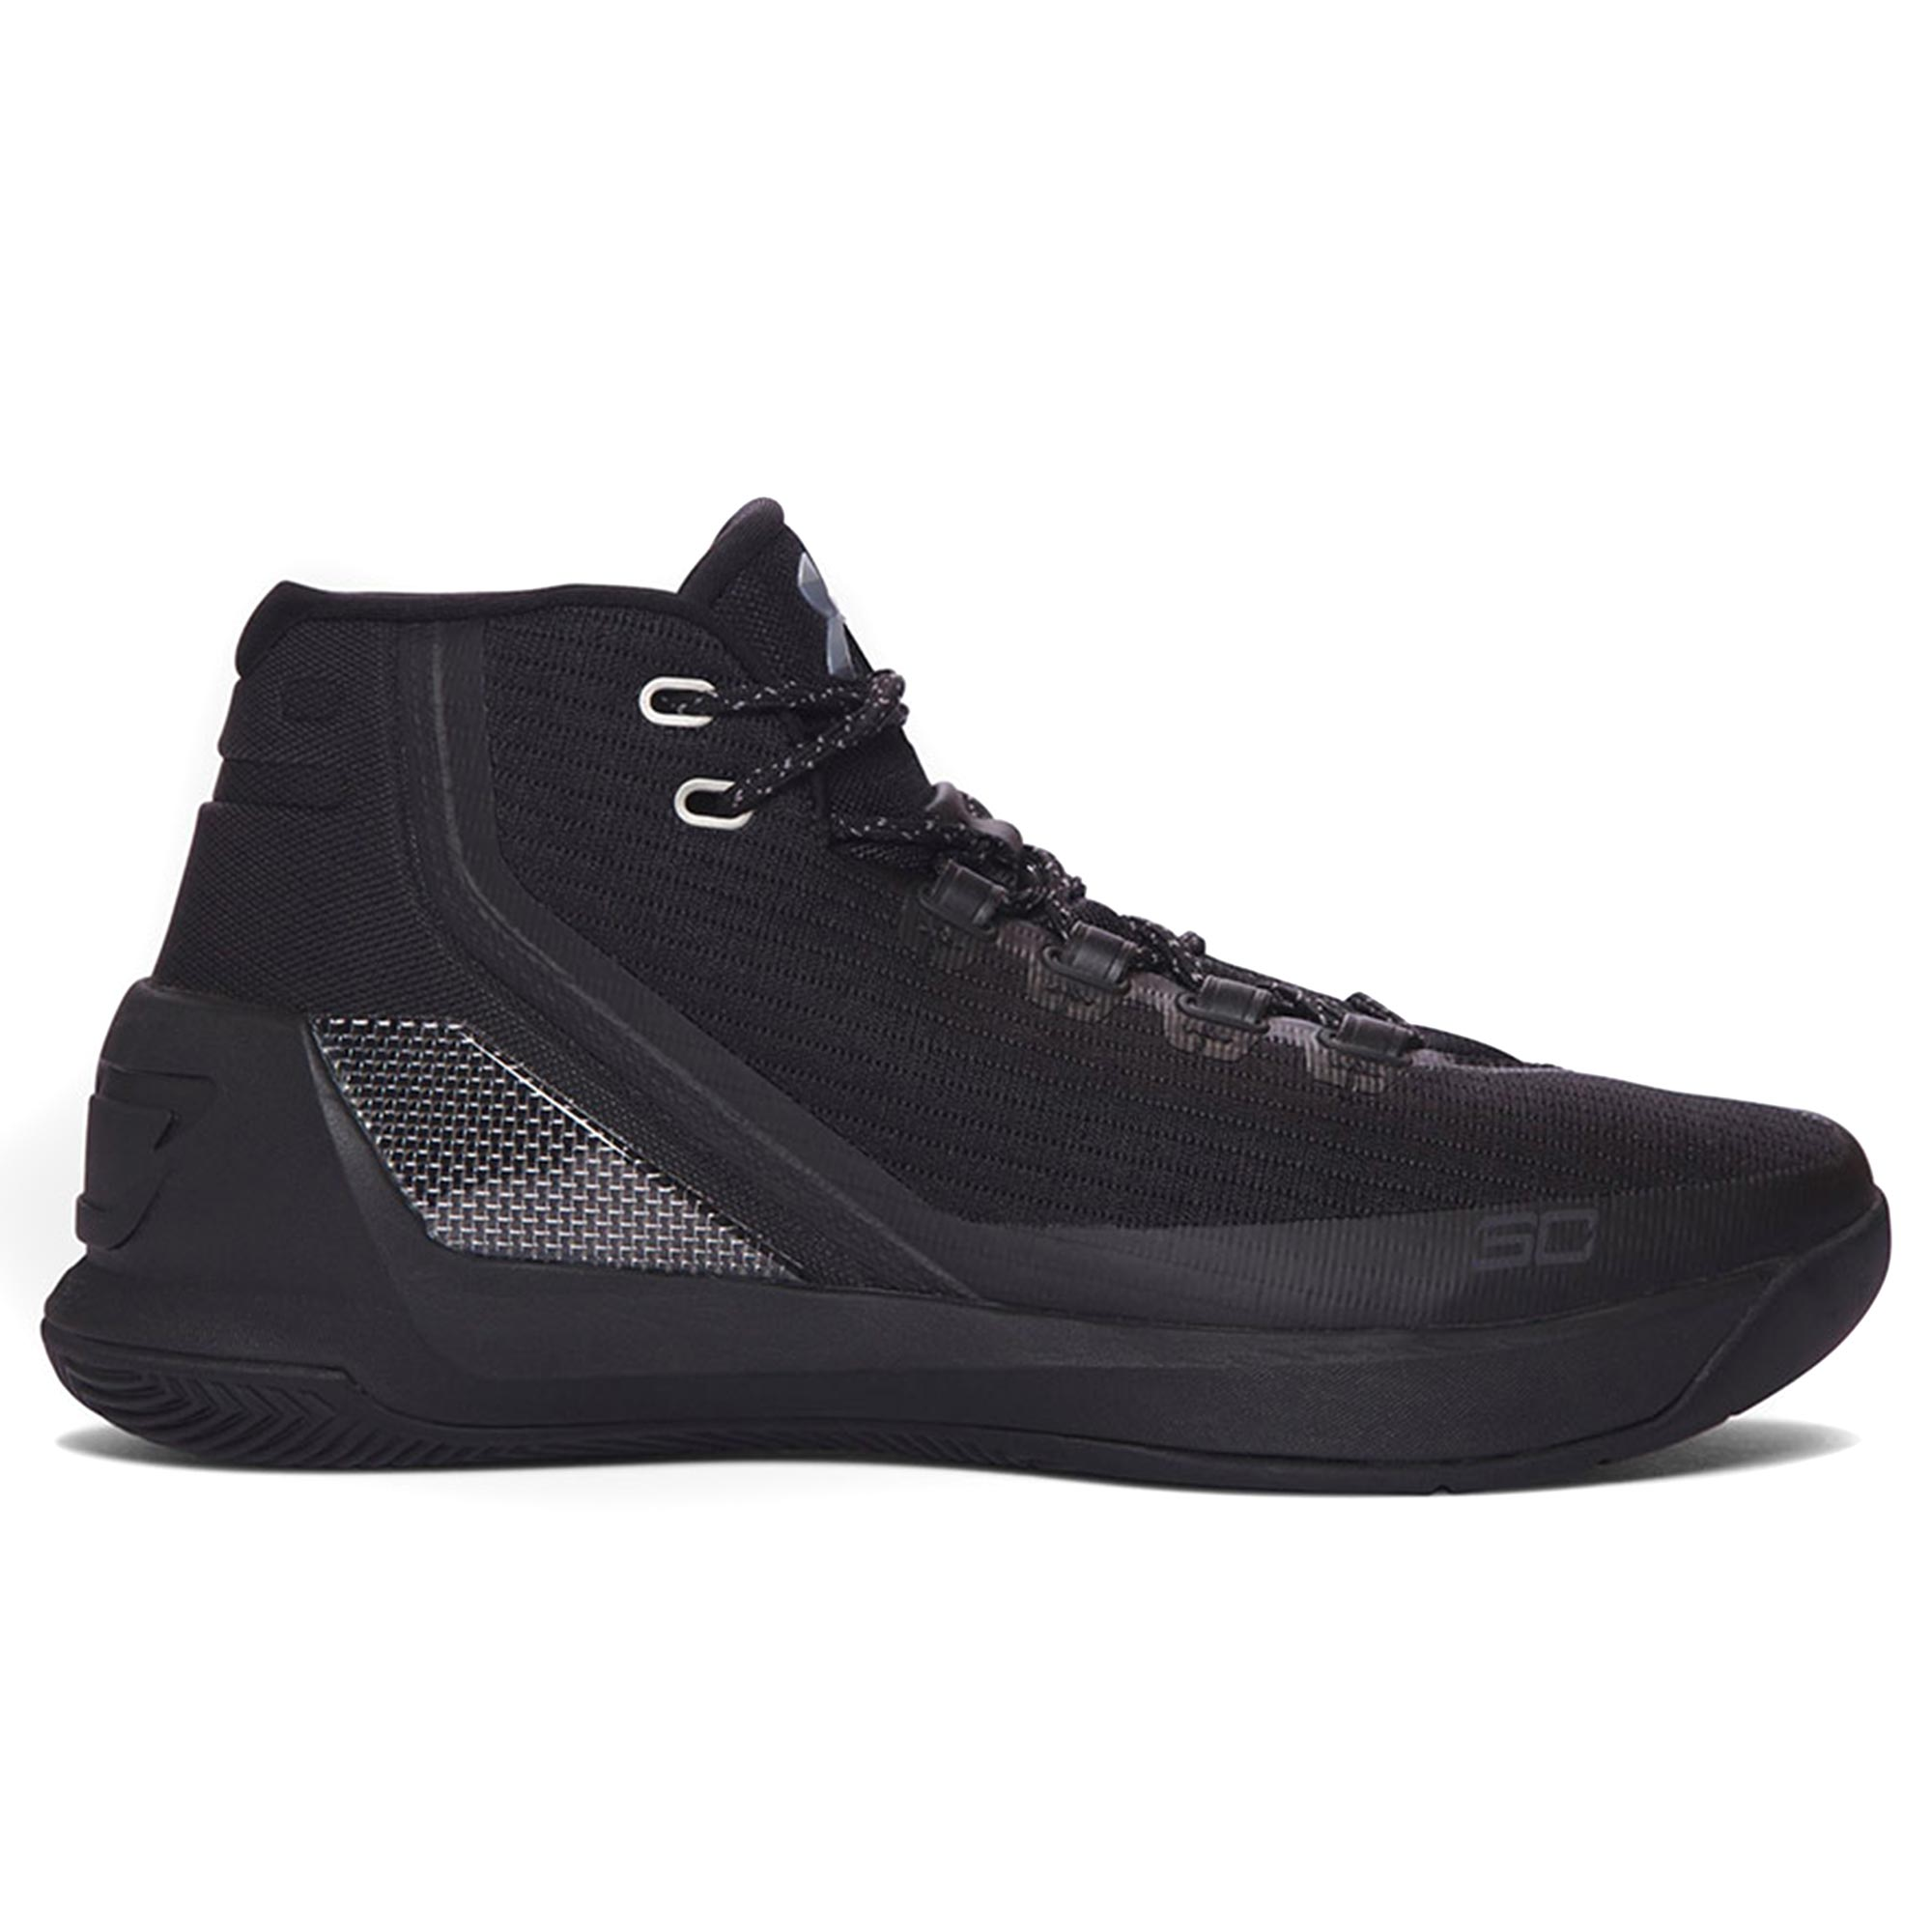 Under Armour Curry 3 Basketball Shoe - Triple Black